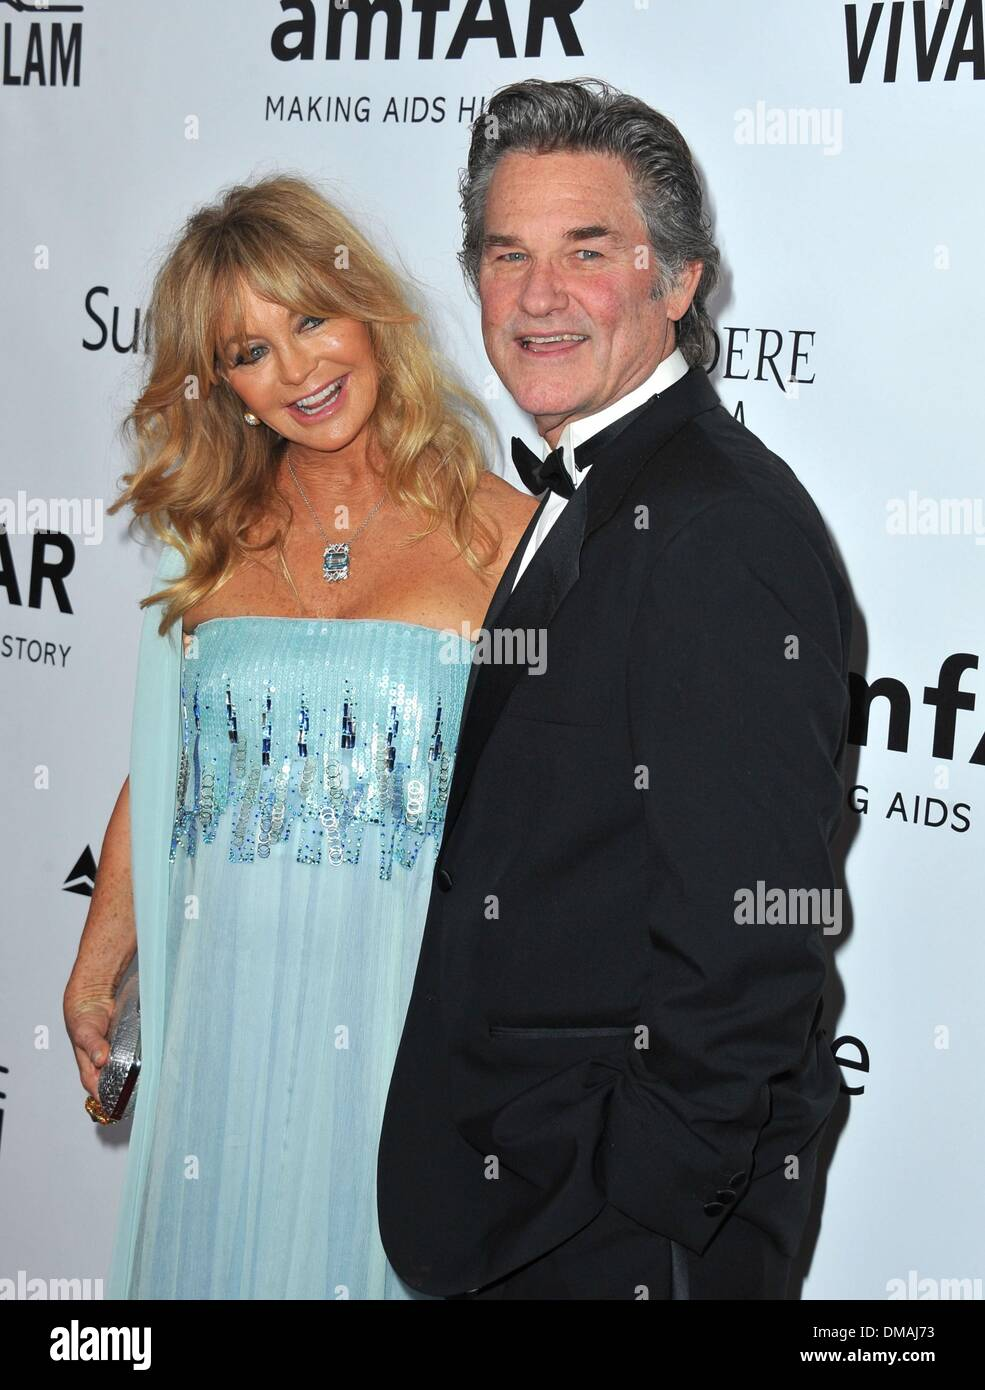 Goldie Hawn Stock Photos & Goldie Hawn Stock Images - Alamy